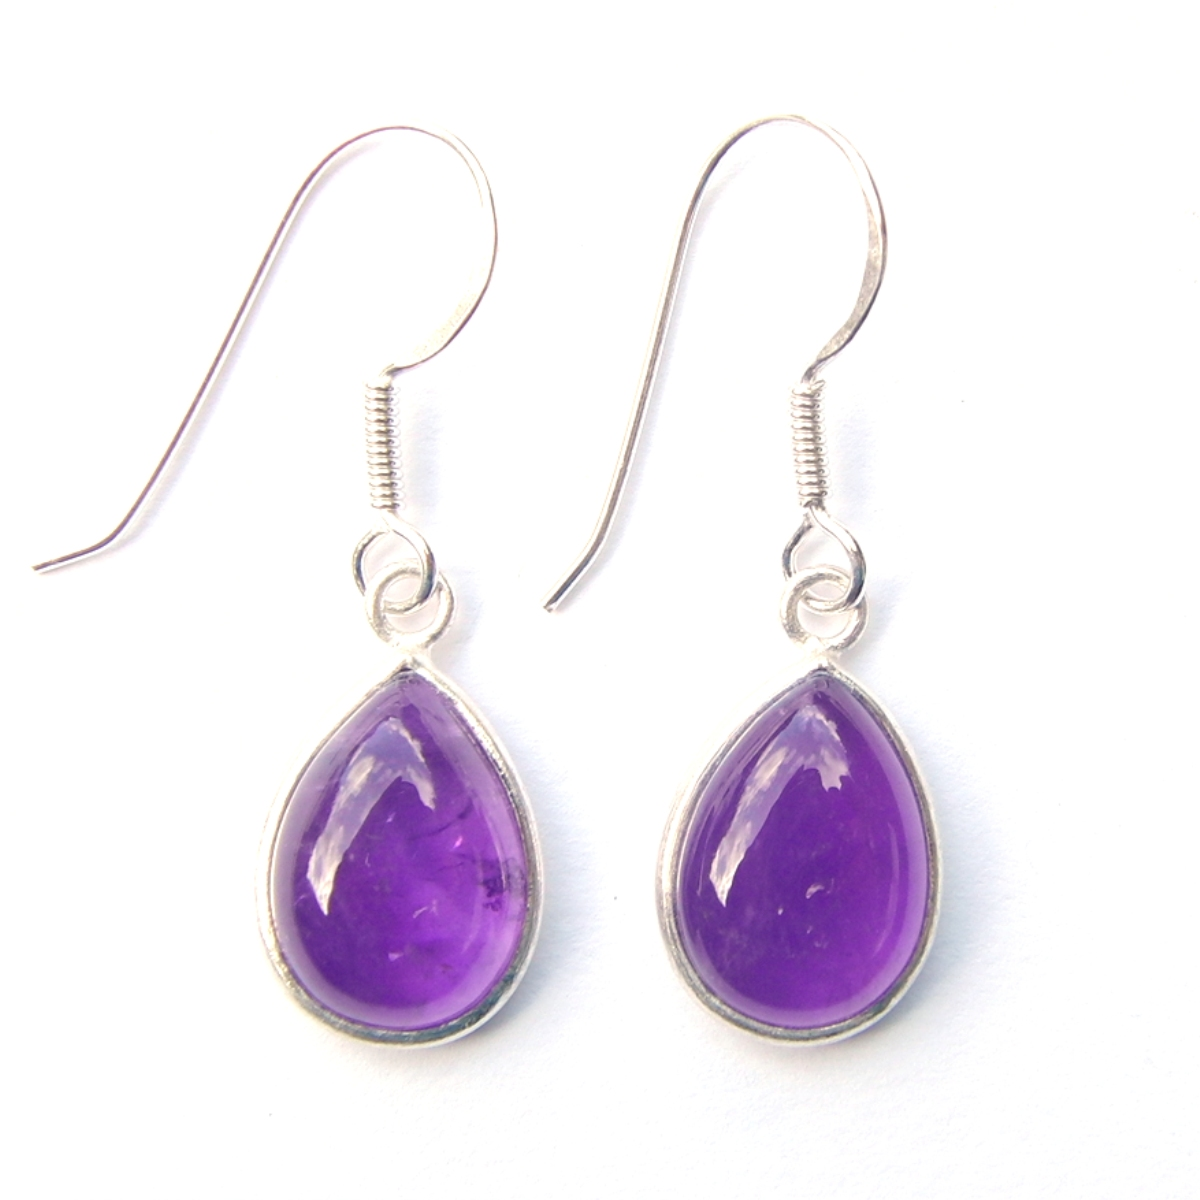 Amethyst Large Teardrop Earrings.